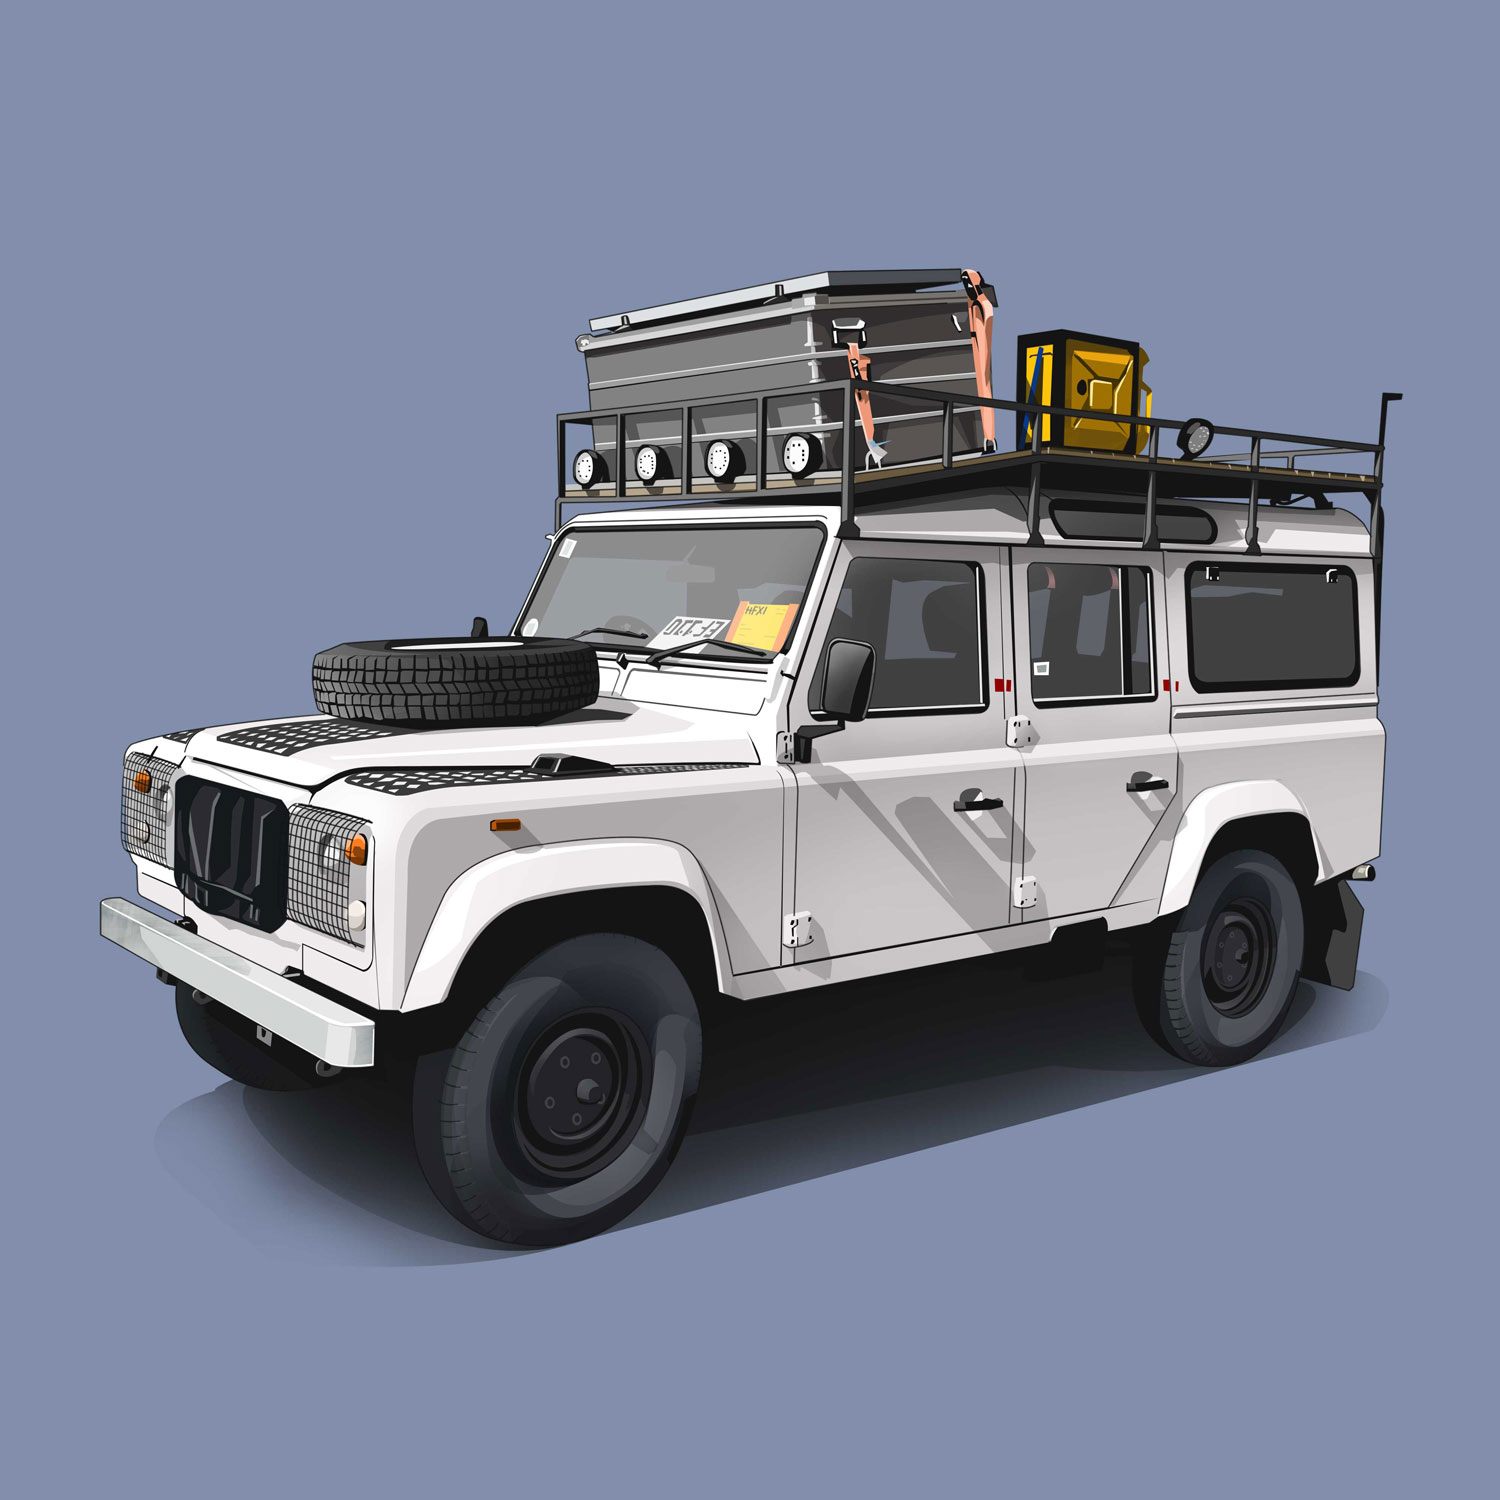 Expeditions-Vehicle-Defender-The-Sunnysidephil